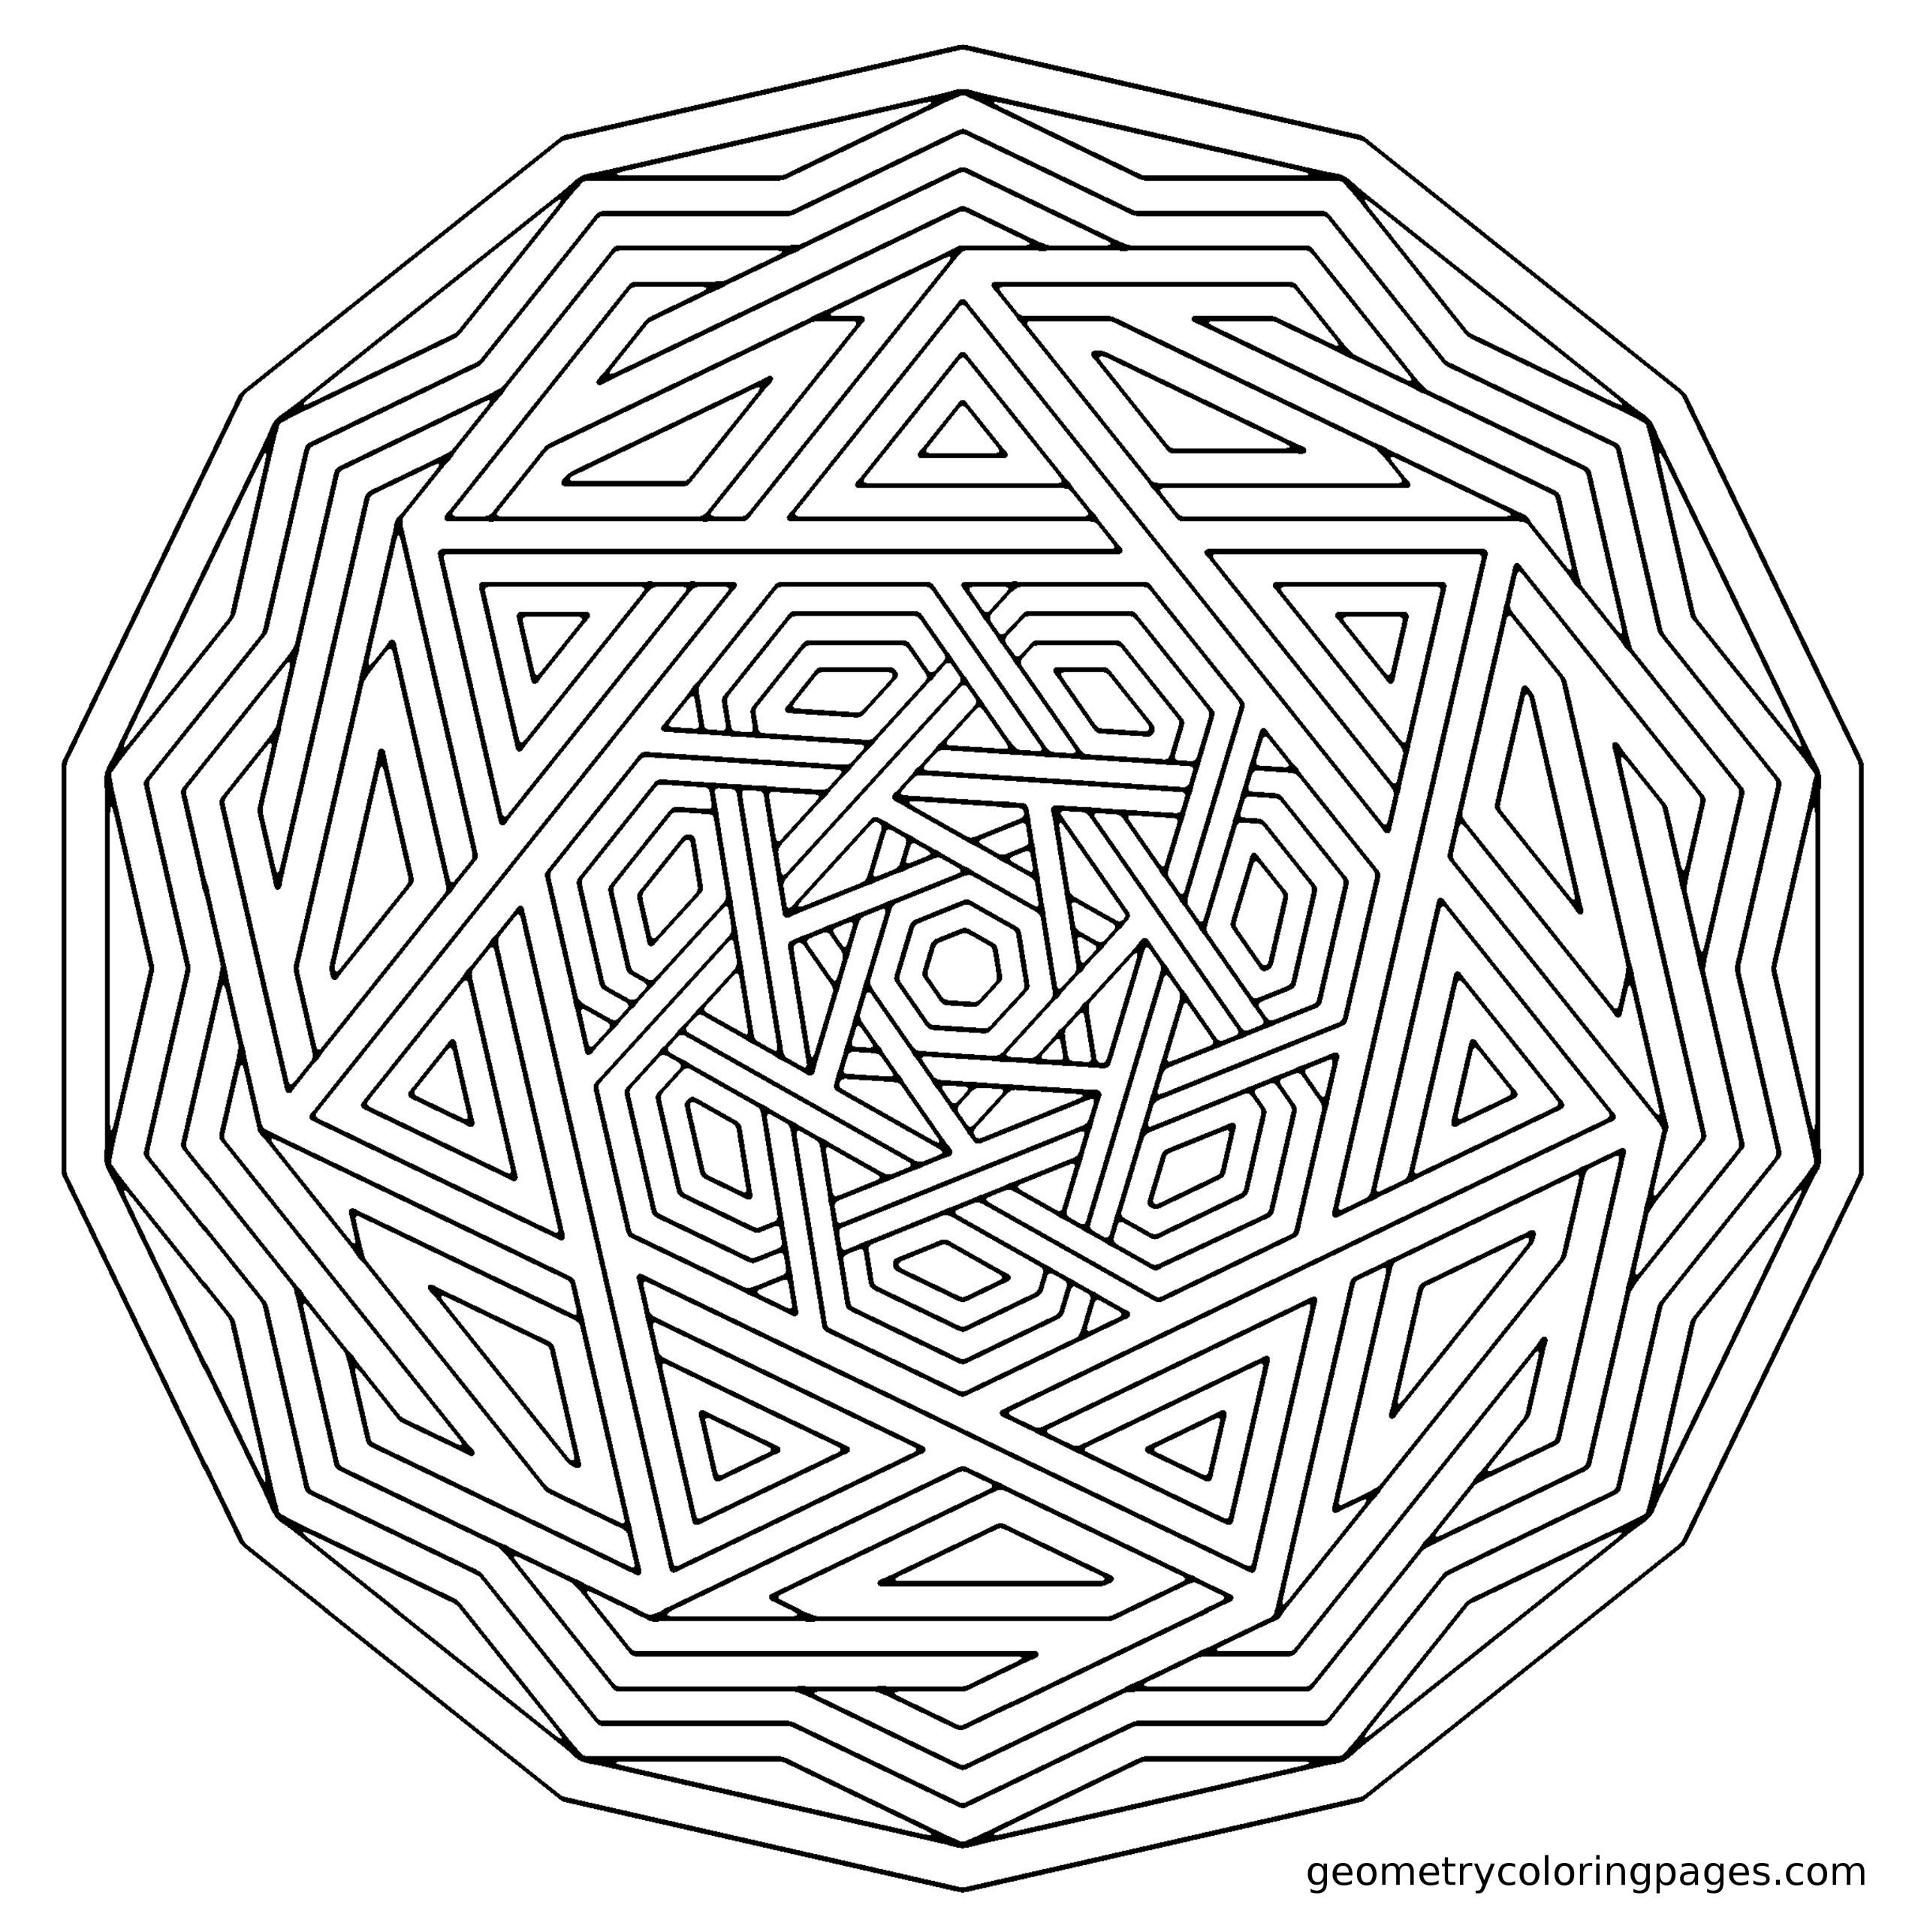 Complex Geometric Coloring Pages Coloring Home